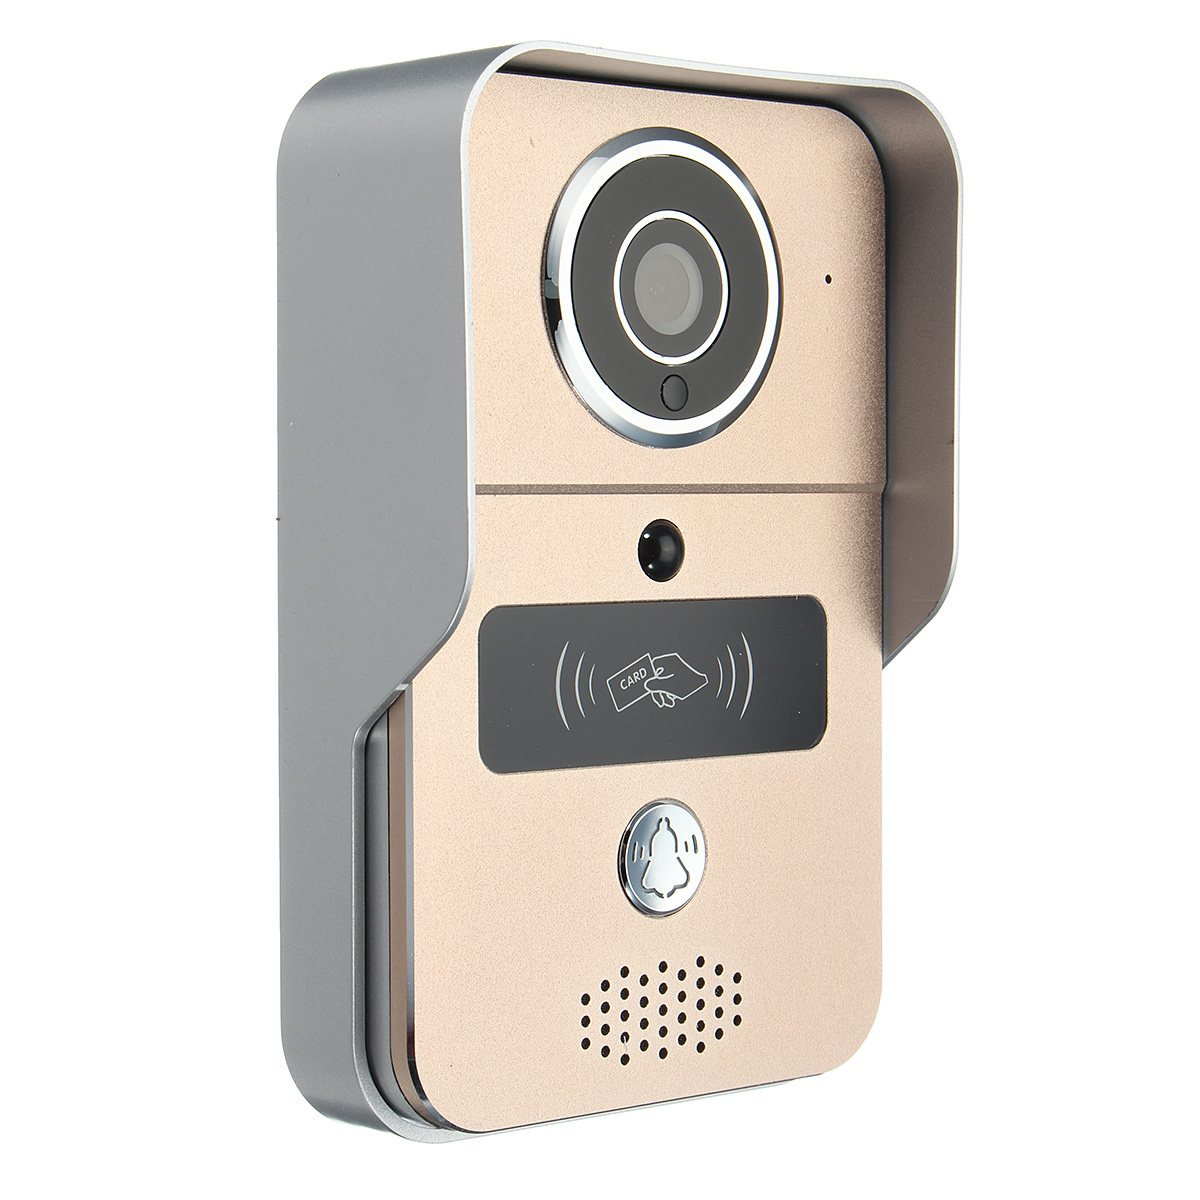 NEW Safurance Wireless Smart Visual Video WIFI Camera Intercom Door Bell Phone Night Security Home Safety RFID new safurance welders dual leather